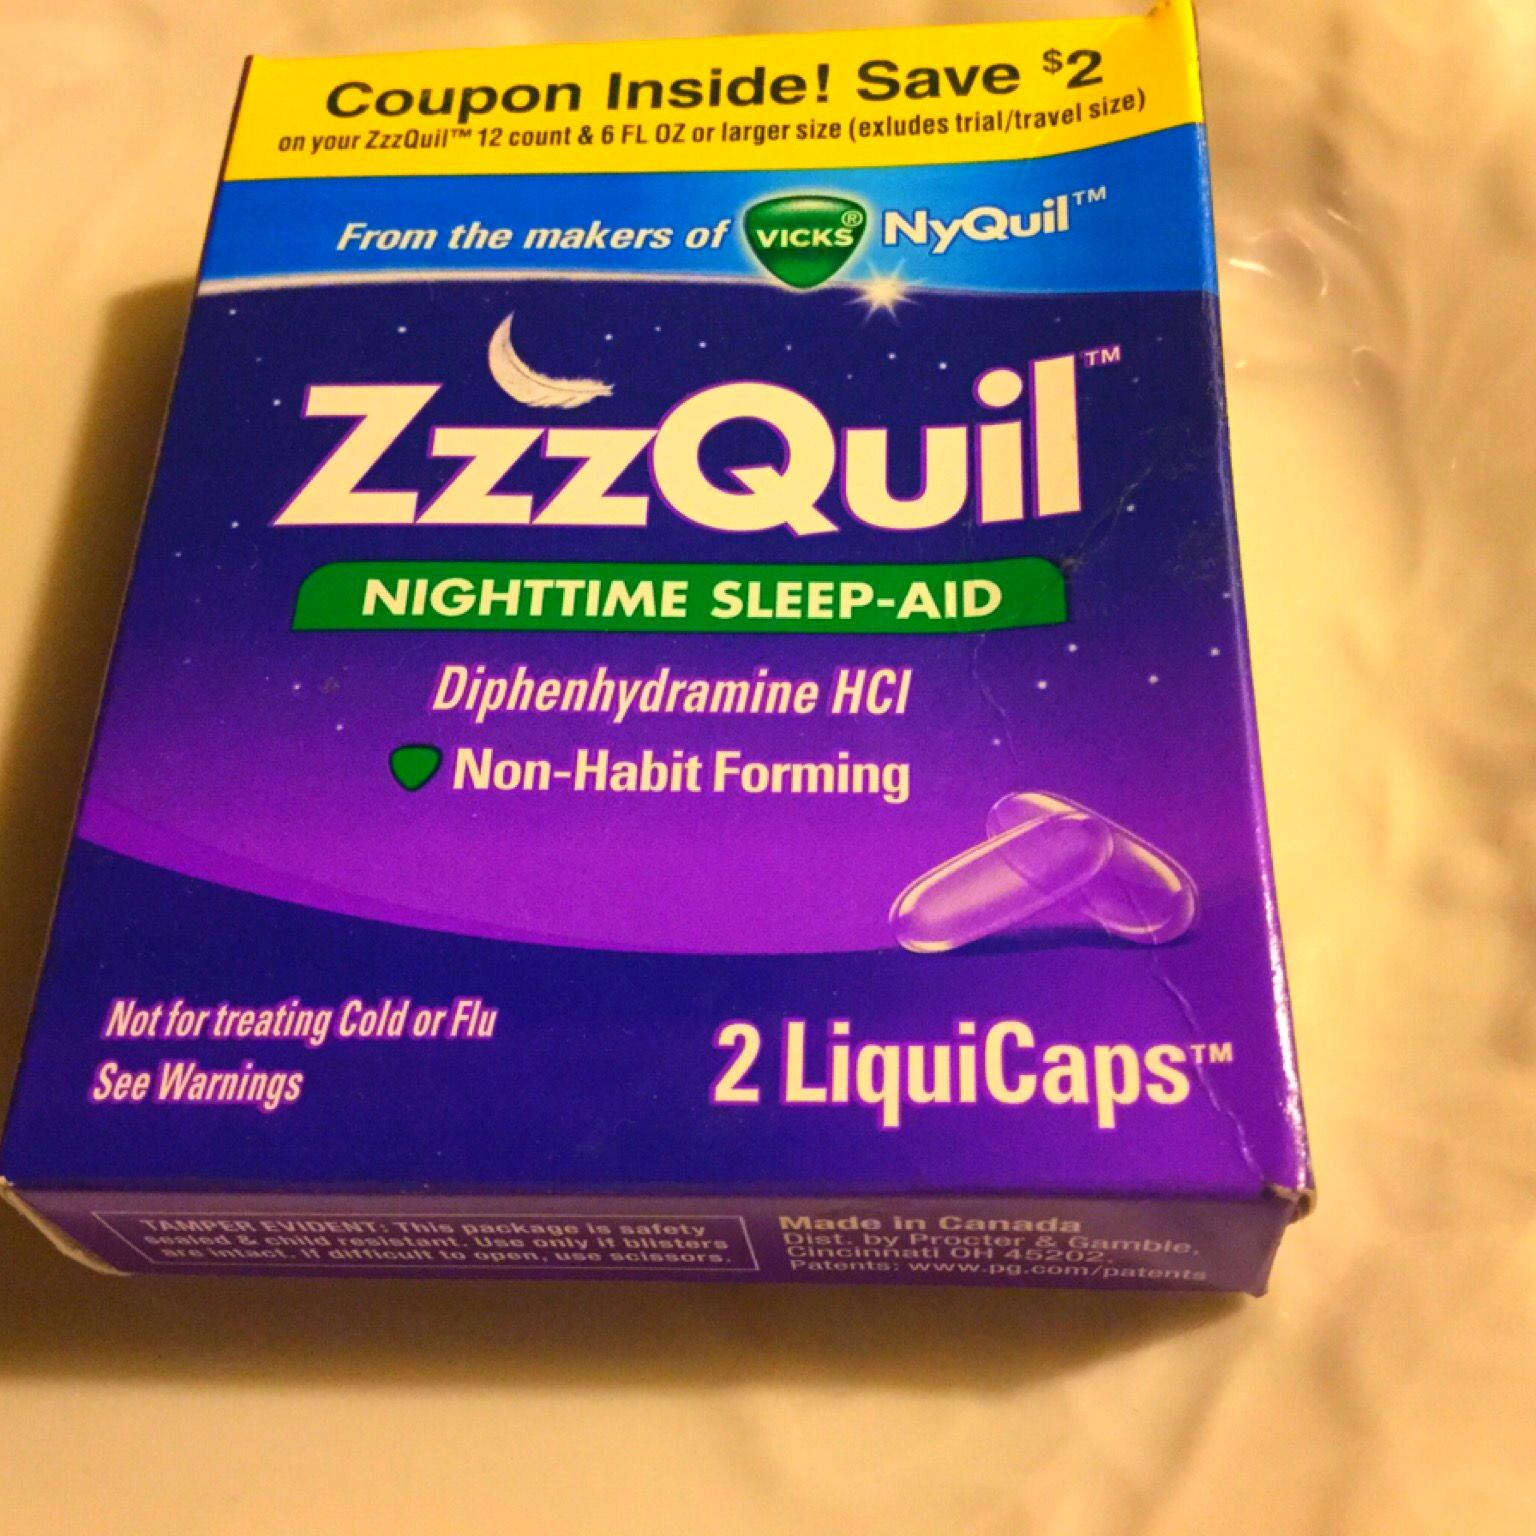 Pin By Maryann Armstrong On Zzzquil Nighttime Sleep Aid Habit Forming Nyquil